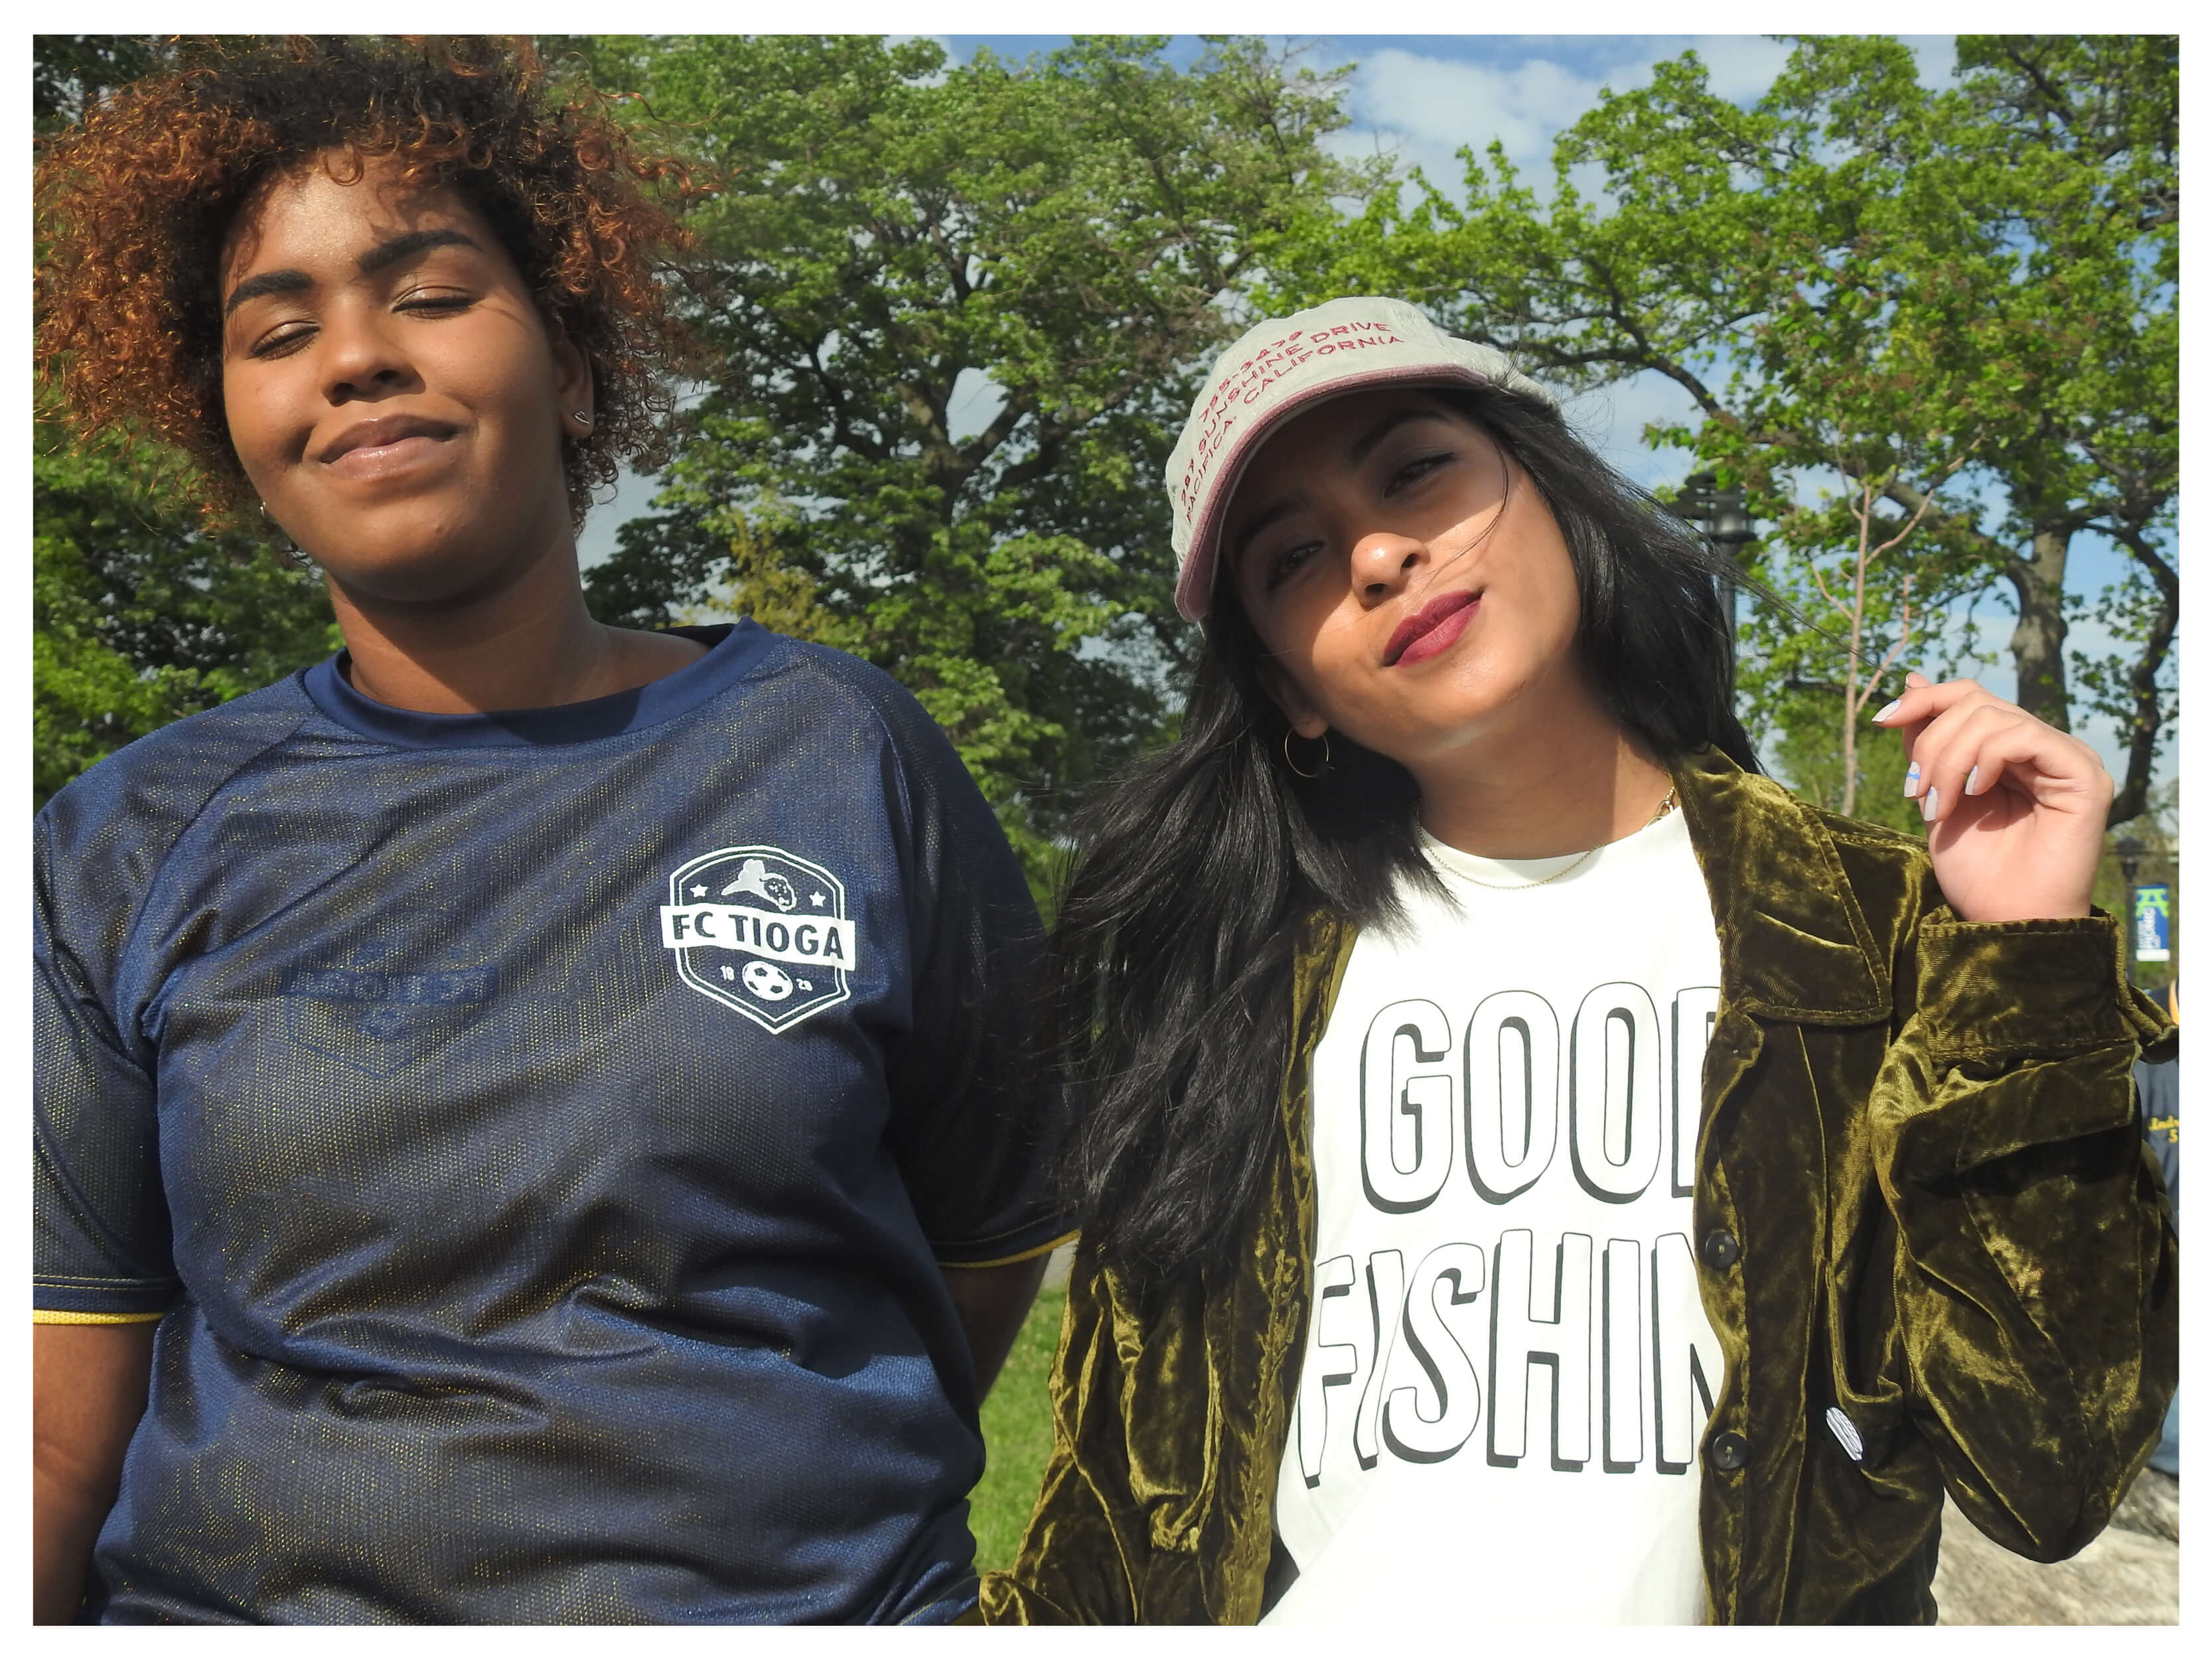 GOOD FISHING - PARKS AND RECREATION Lookbook - Produced by (ft$)